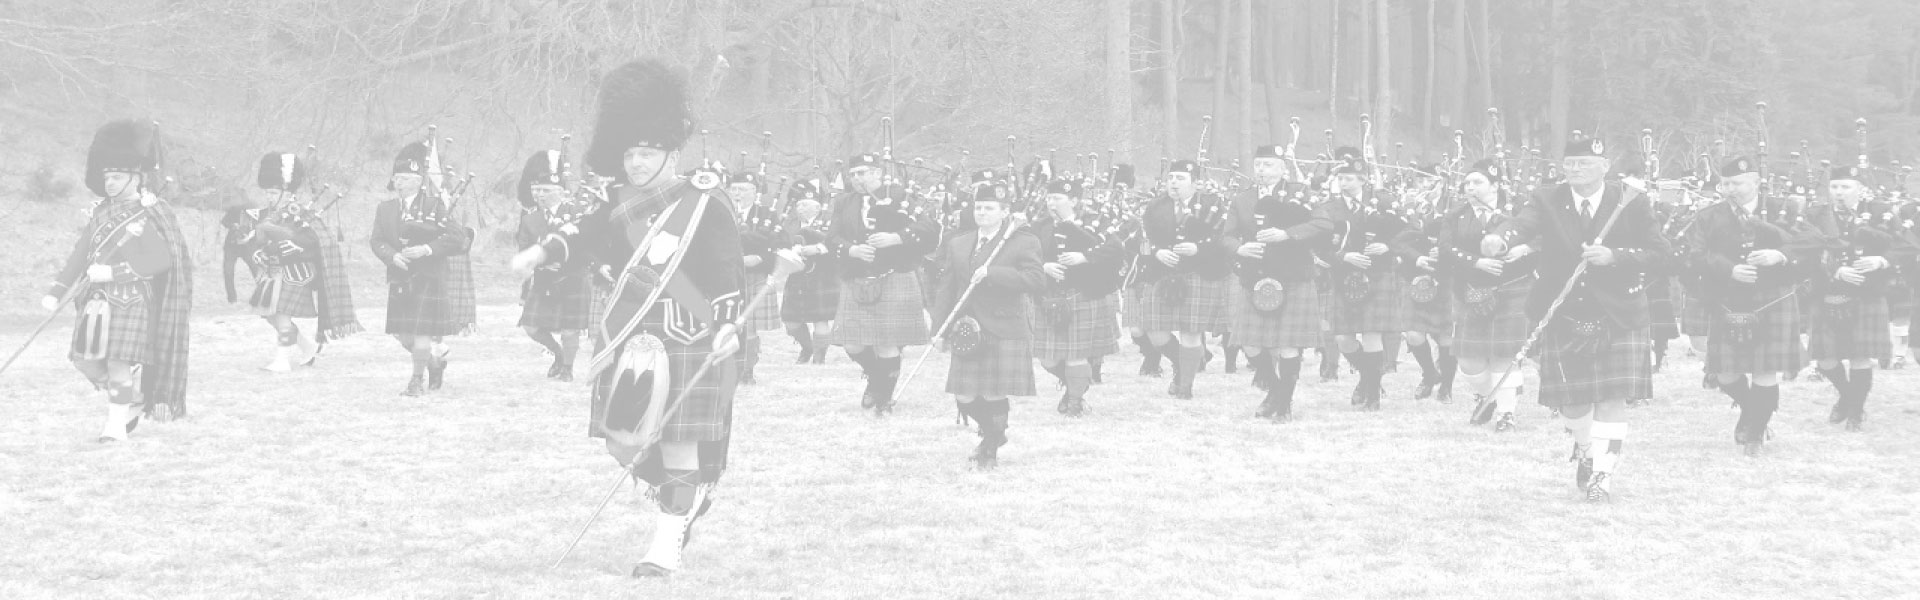 Pipes and Drums of the Scottish Highlands